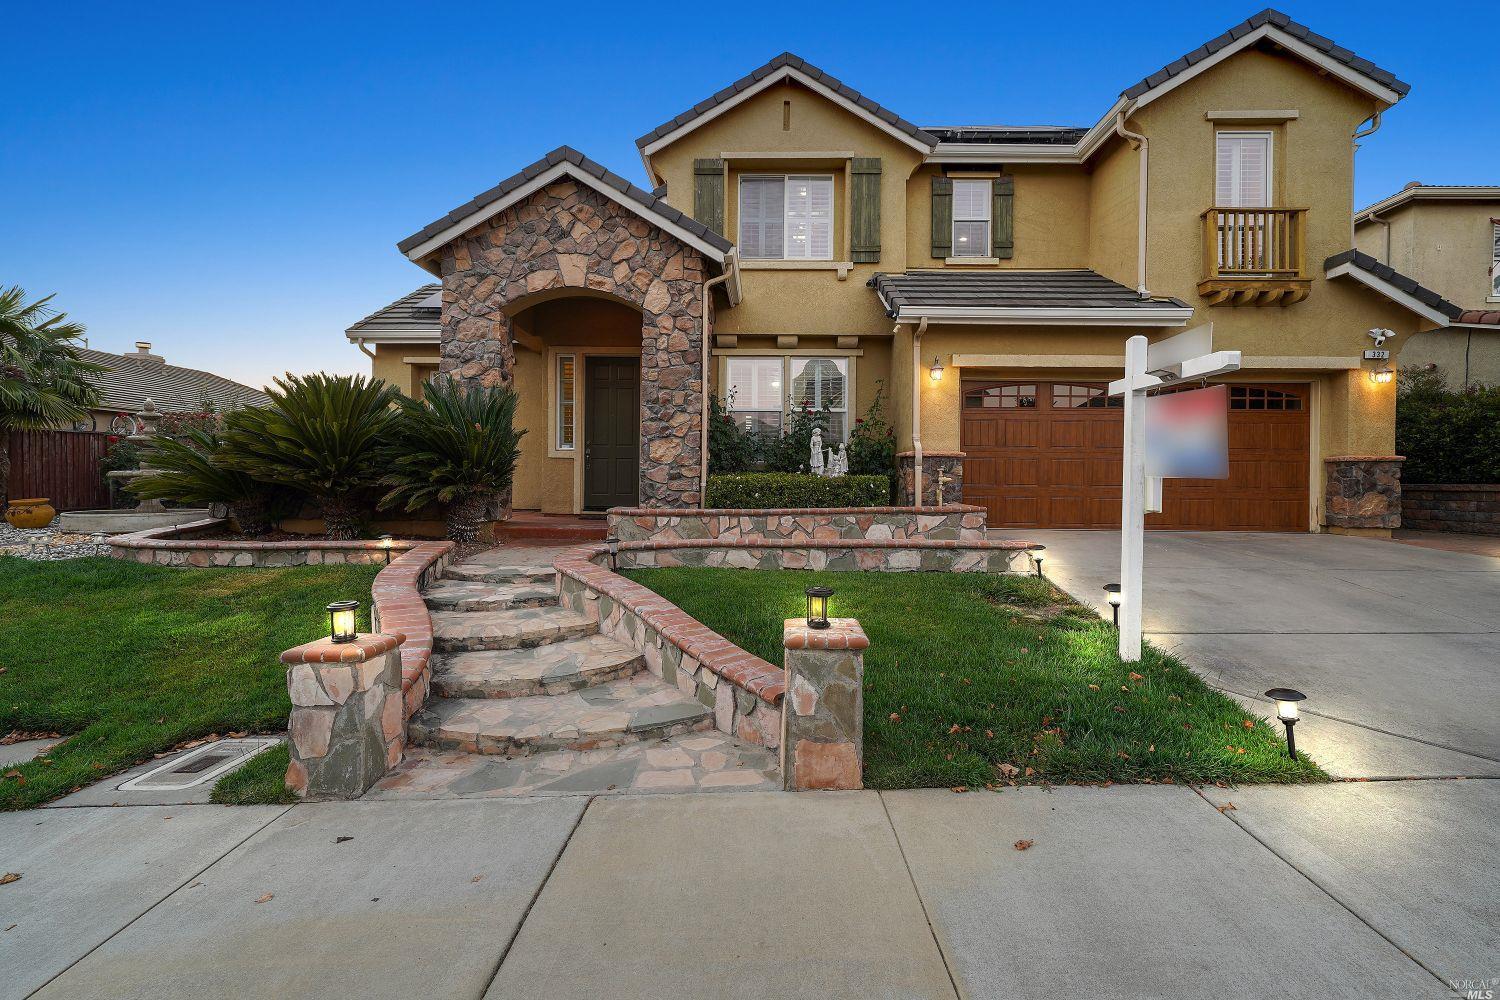 332 Ring Neck Street, American Canyon CA 94503